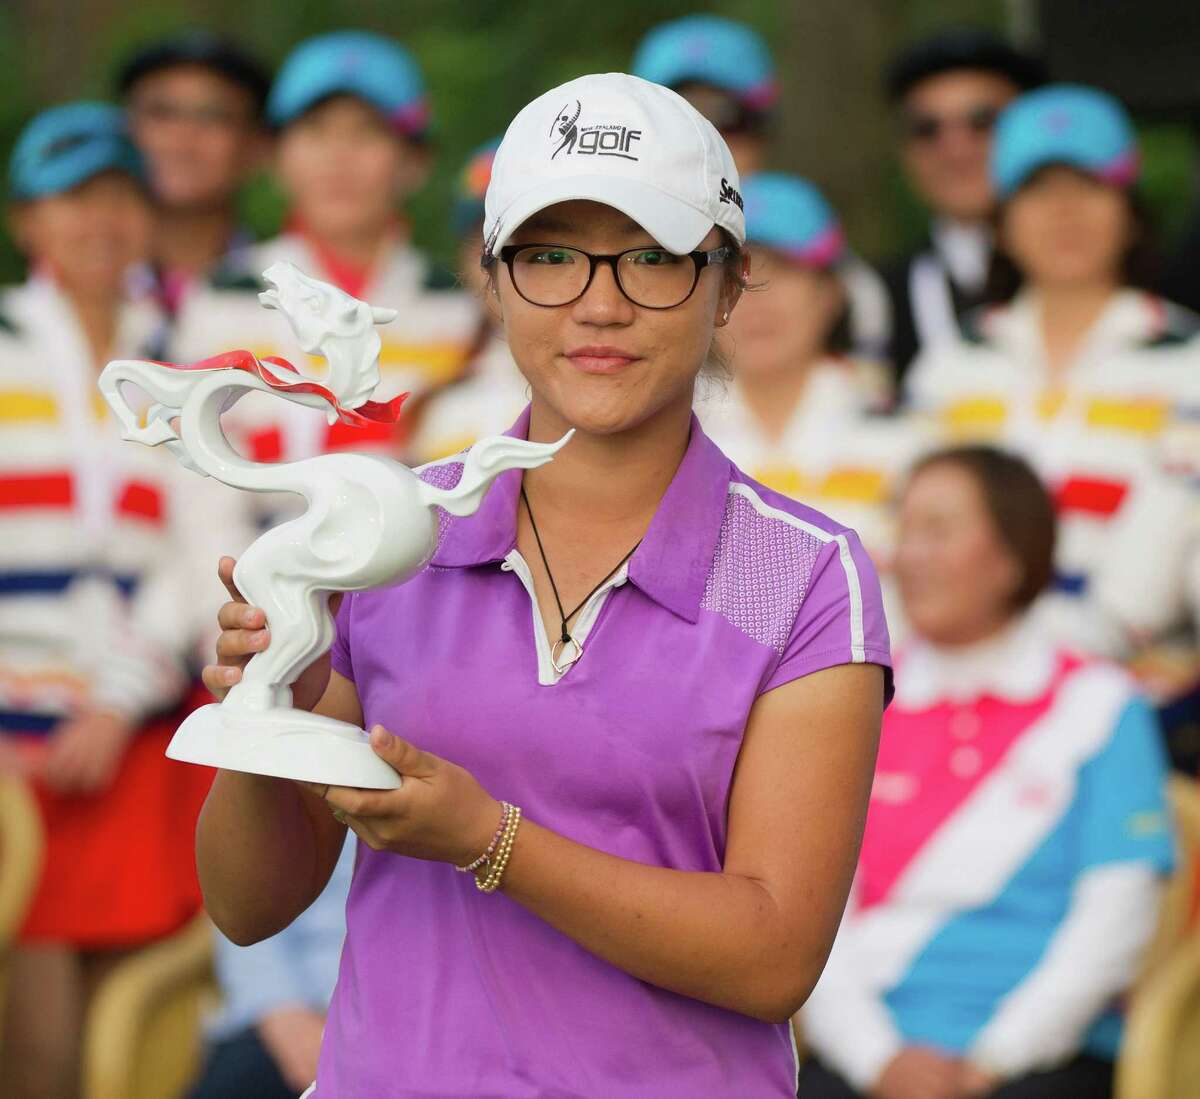 TAIPEI, TAIWAN - DECEMBER 08: Winner of the 2013 Swinging Skirts World Ladies Masters, Lydia Ko of New Zealand, holds up her trophy, during the last day of the Swinging Skirts 2013 World Ladies Masters, at Miramar Golf & Country Club on December 8, 2013 in Taipei, Taiwan. (Photo by Gareth Gay/Getty Images) ORG XMIT: 451694979